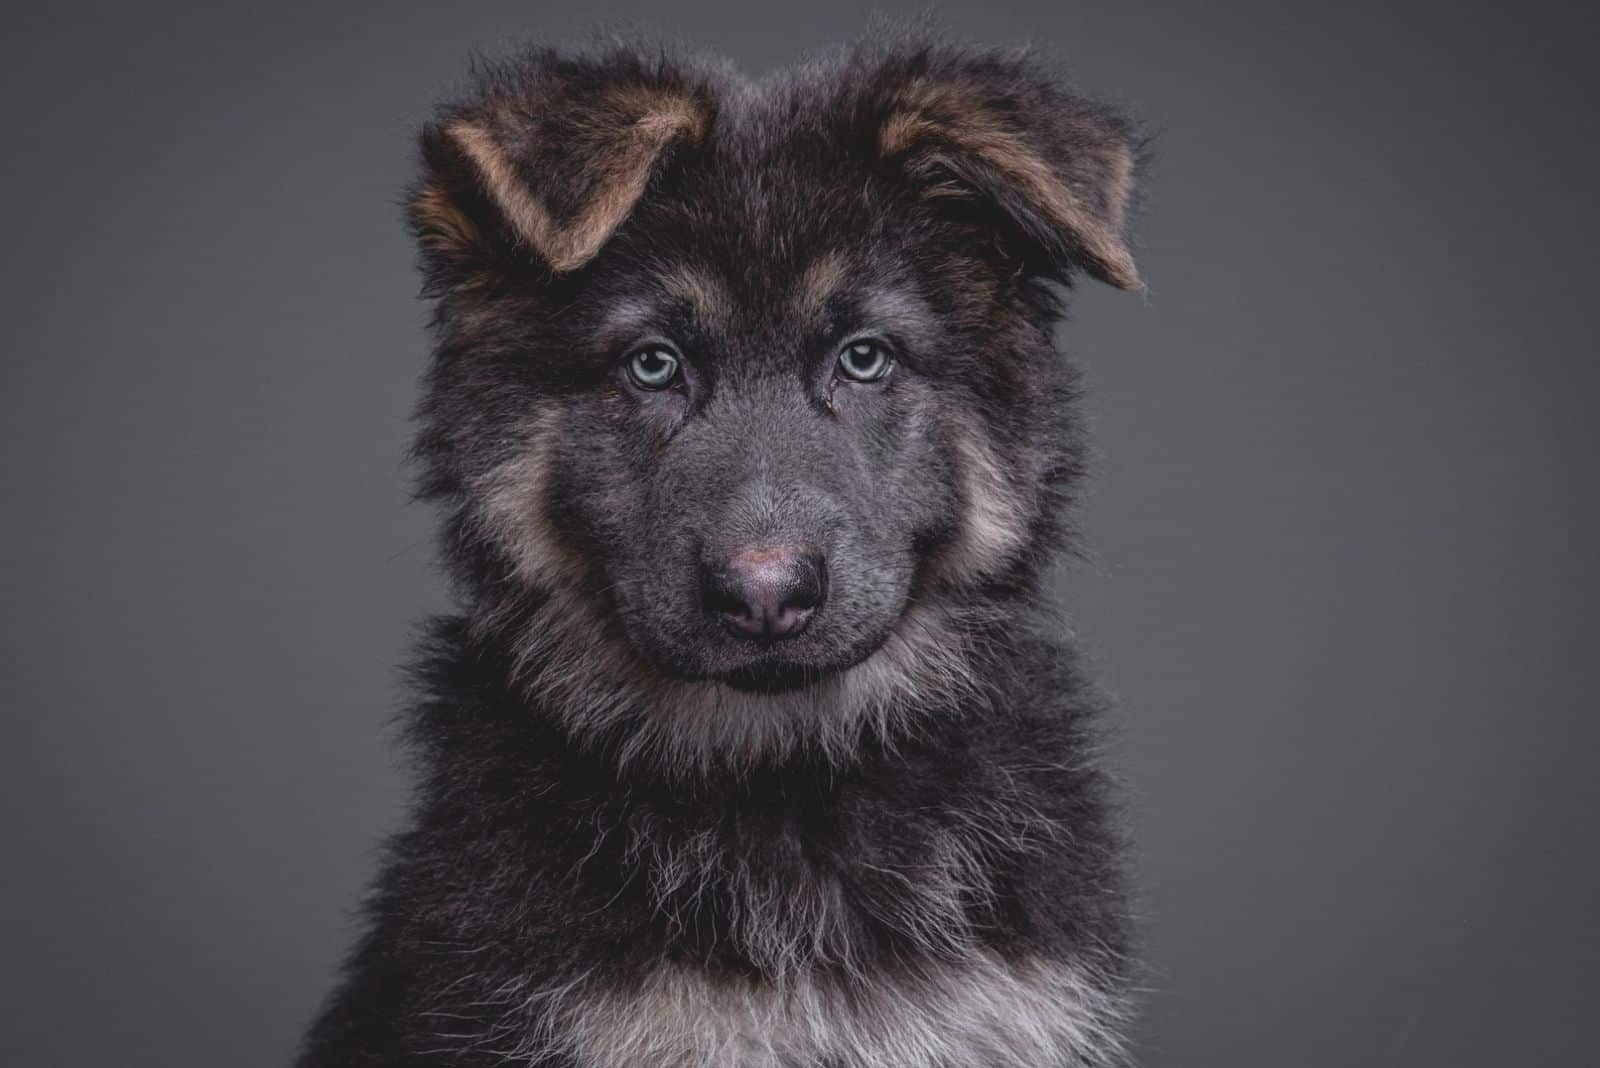 Adorable German Shepherd puppy with blue eyes